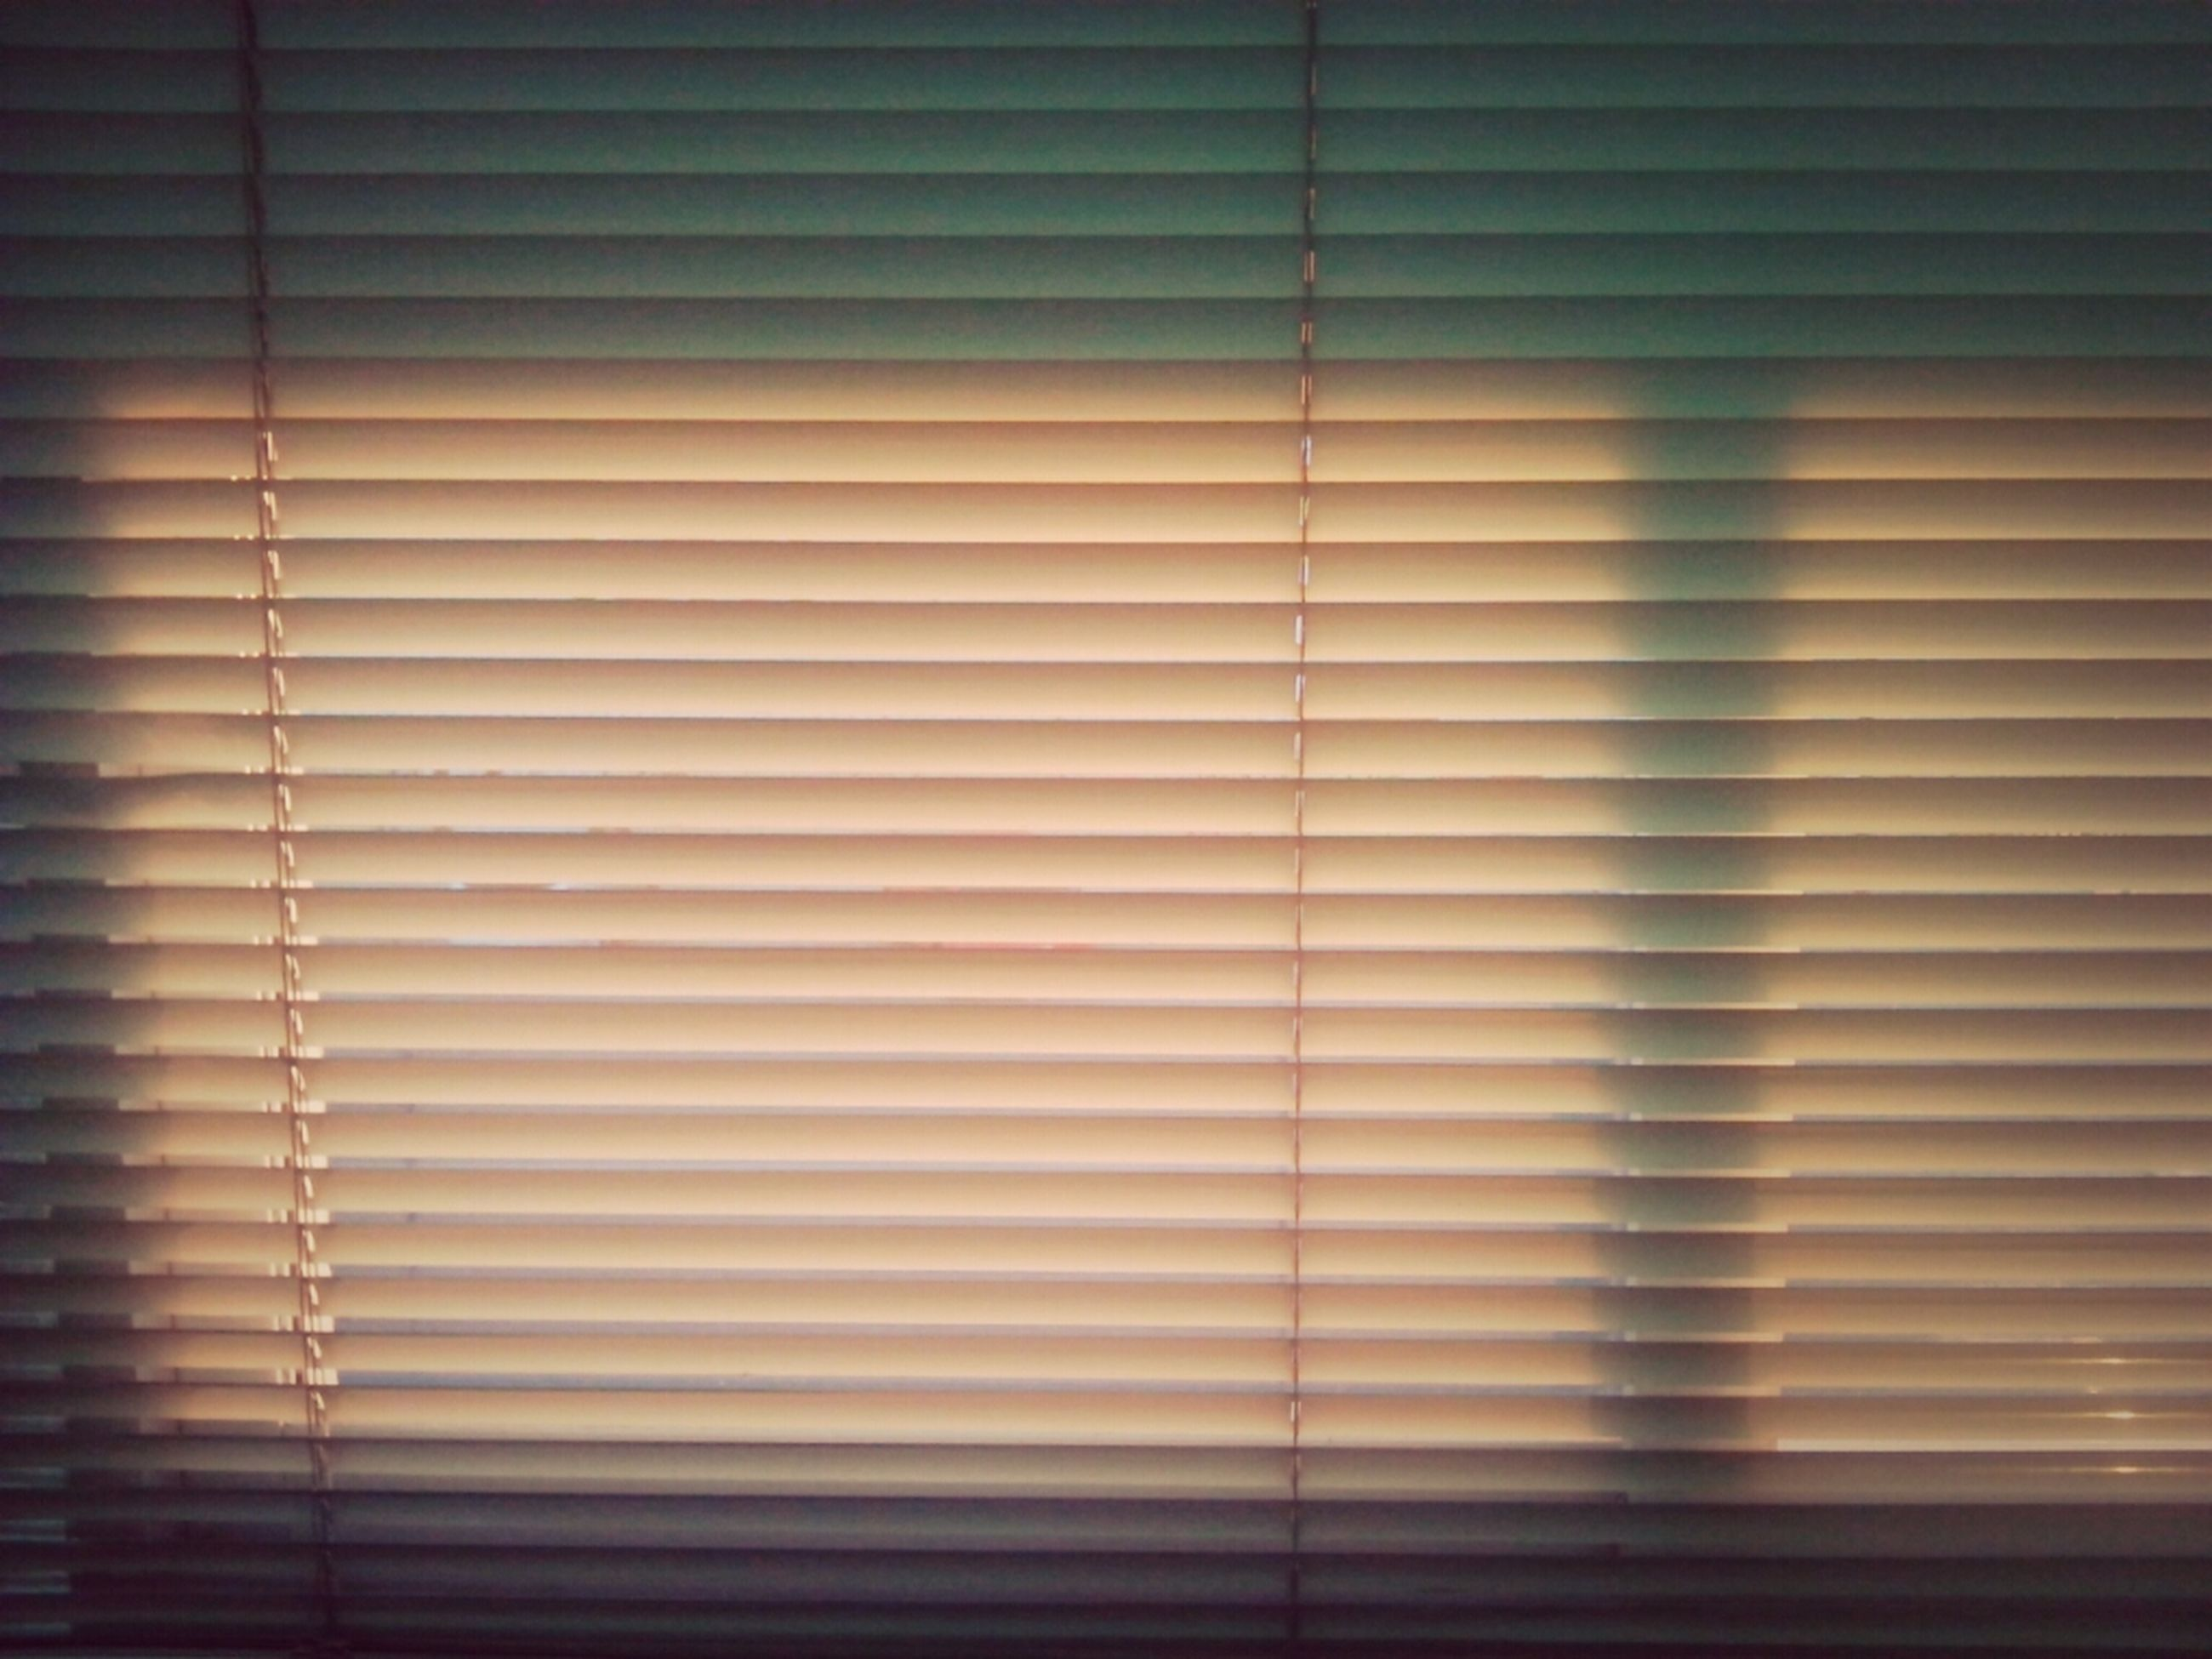 indoors, pattern, wall - building feature, blinds, curtain, full frame, wall, backgrounds, closed, window, built structure, architecture, no people, textured, home interior, shadow, close-up, repetition, shutter, illuminated